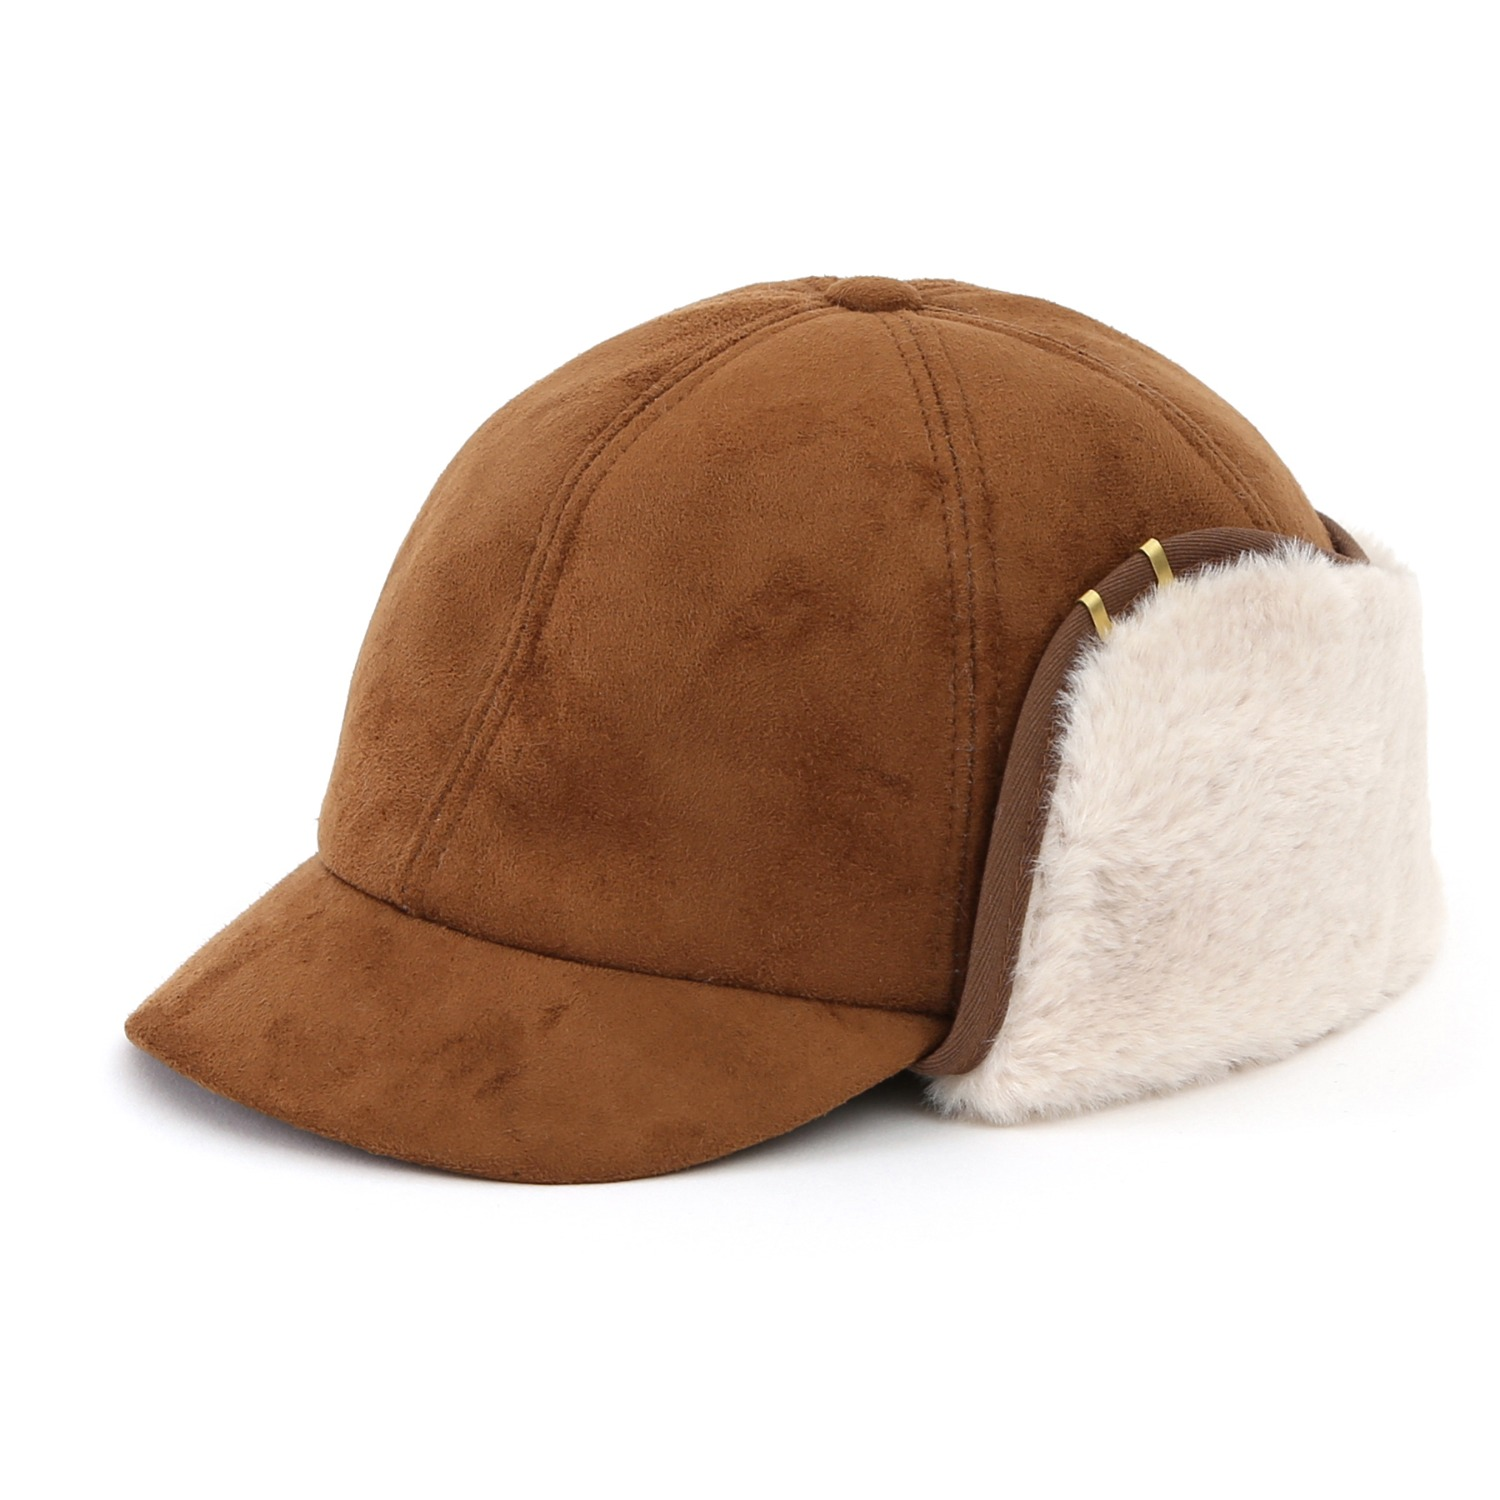 SHORT VISOR EAR FLAP / MOUTON / BROWN